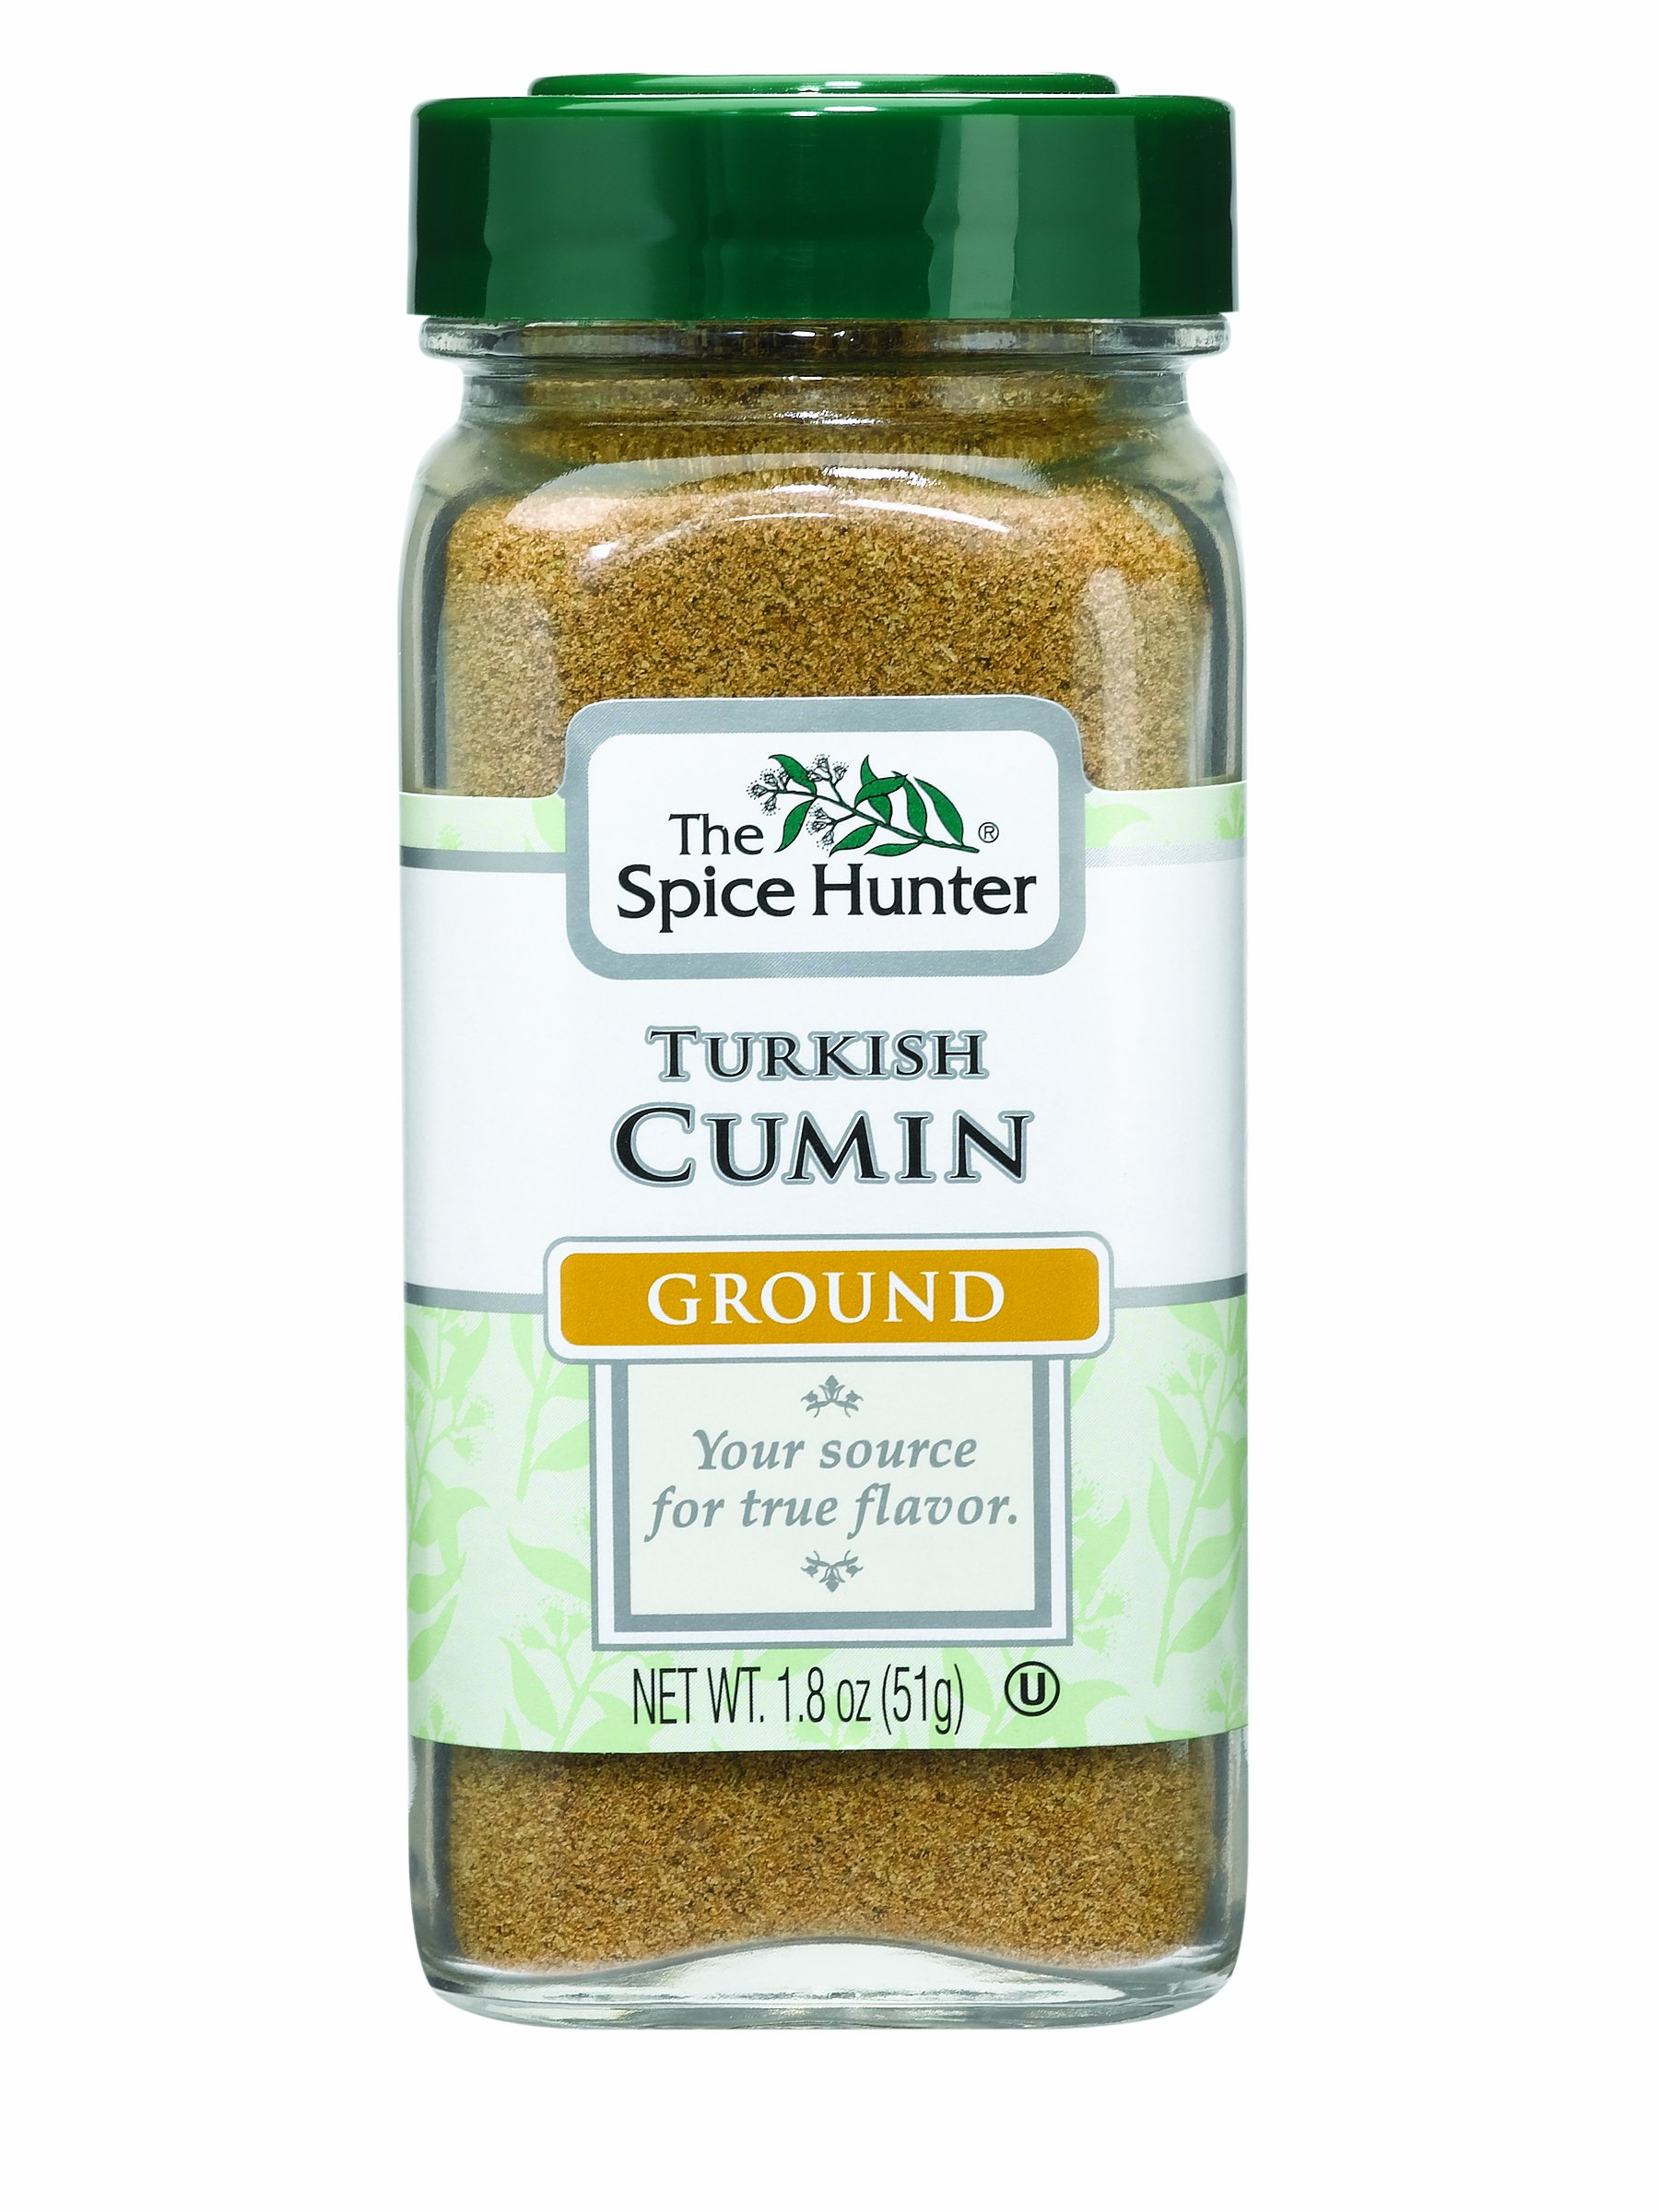 The Spice Hunter Cumin, Turkish, Ground, 1.8-Ounce Jars (Pack of 6)